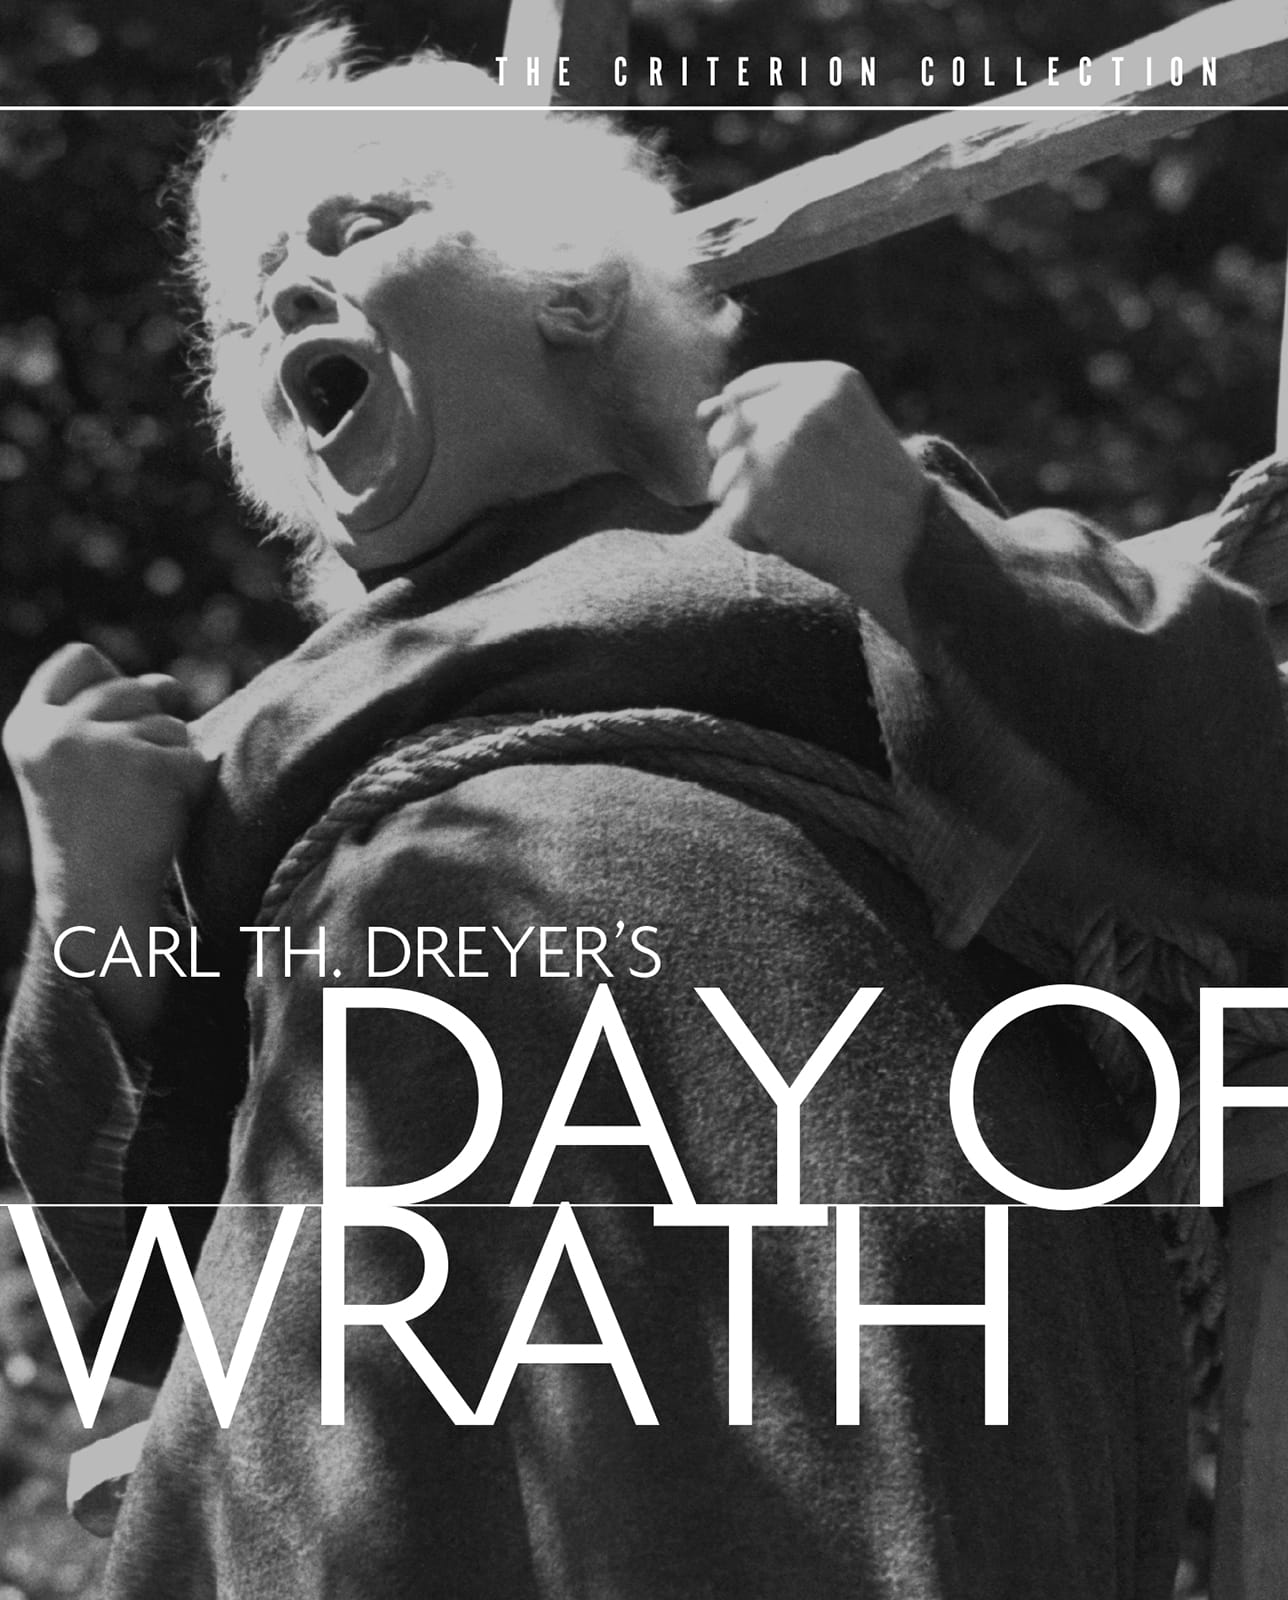 Day Of Wrath 1943 The Criterion Collection